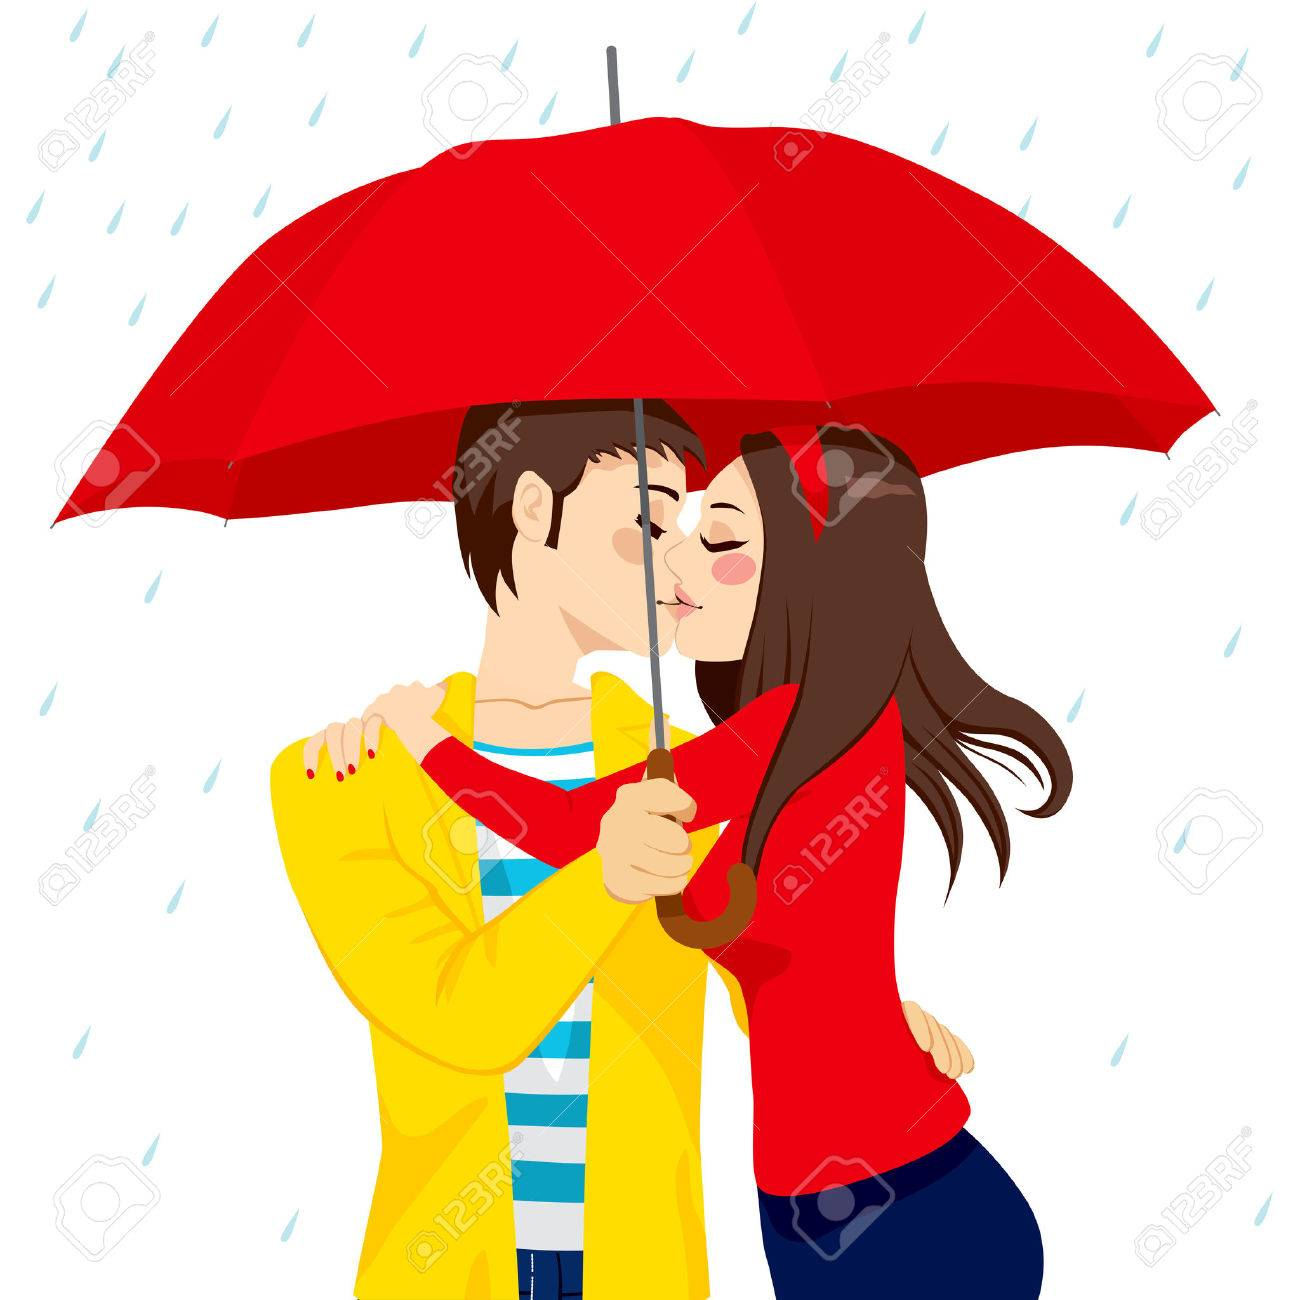 Sweet couple in love hugging and kissing under big red umbrella sweet couple in love hugging and kissing under big red umbrella on a rainy day stock altavistaventures Image collections